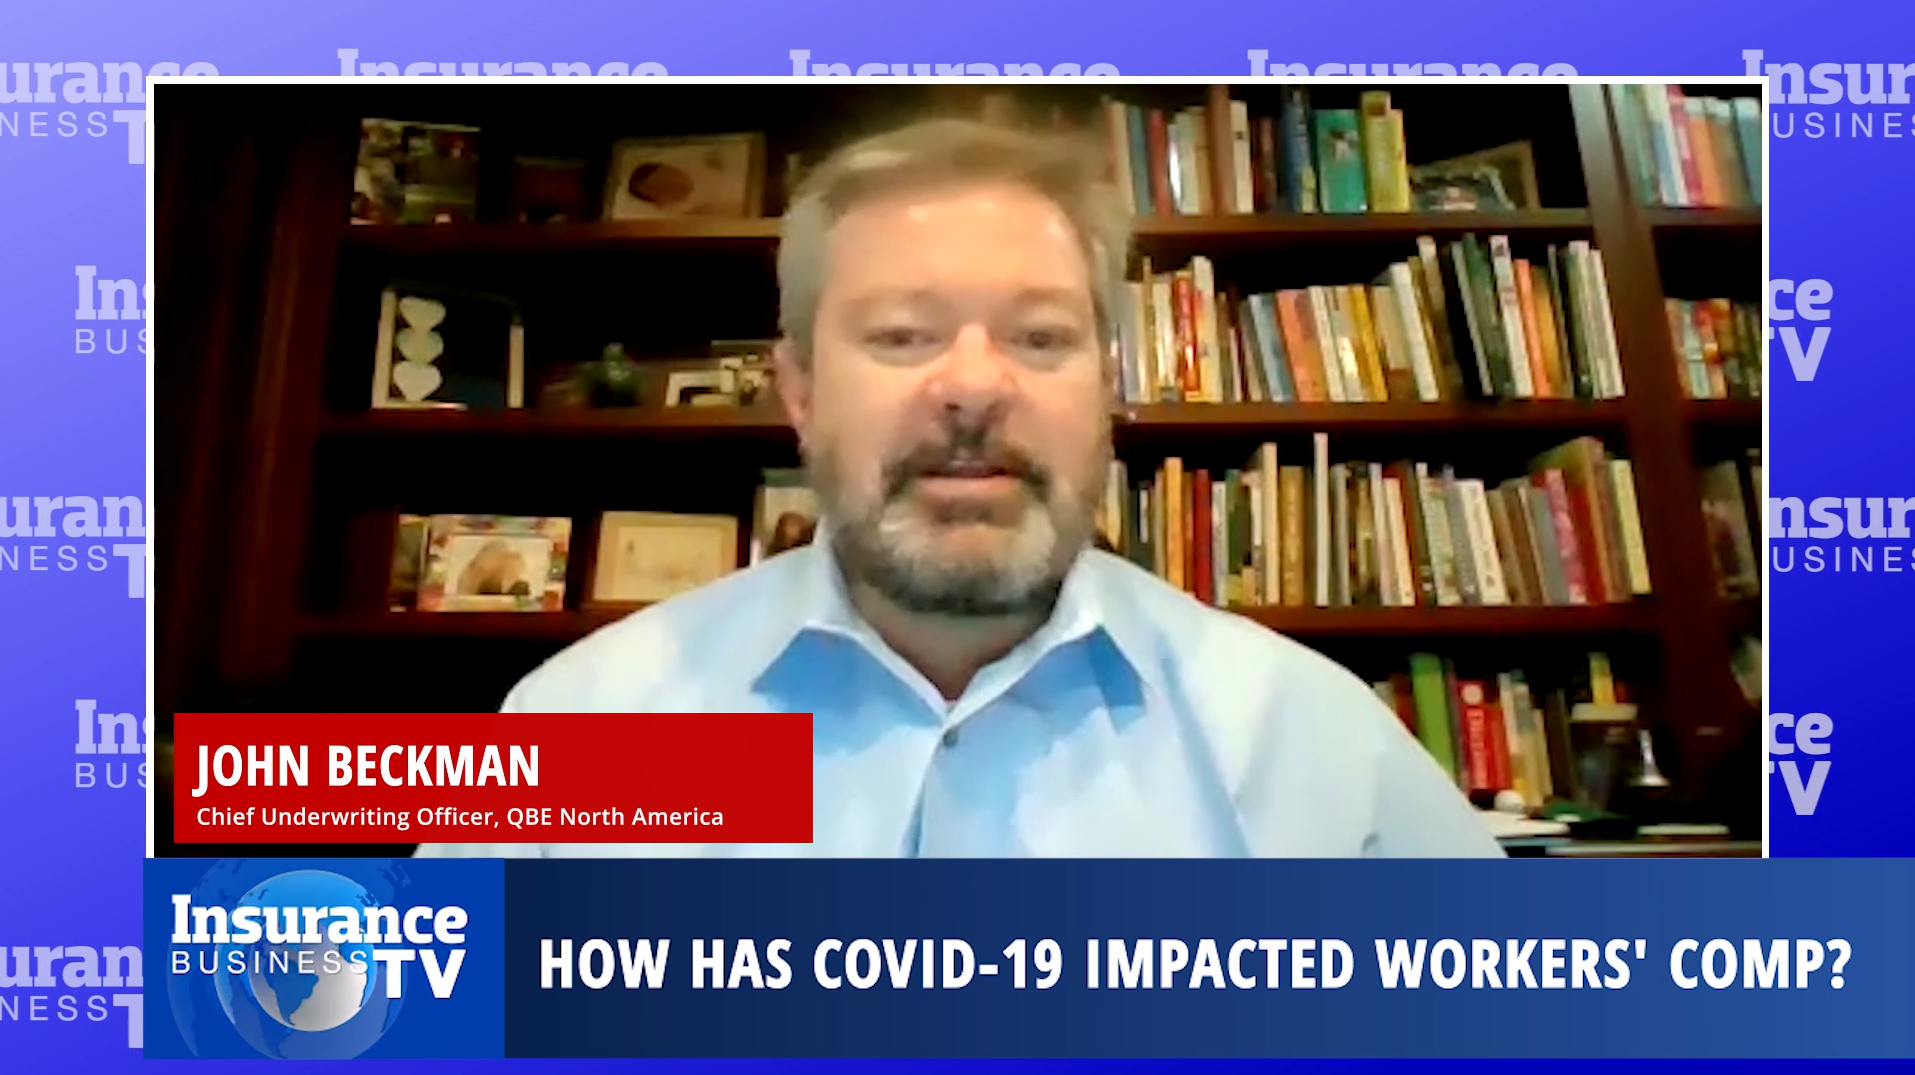 How has COVID-19 impacted workers' comp?